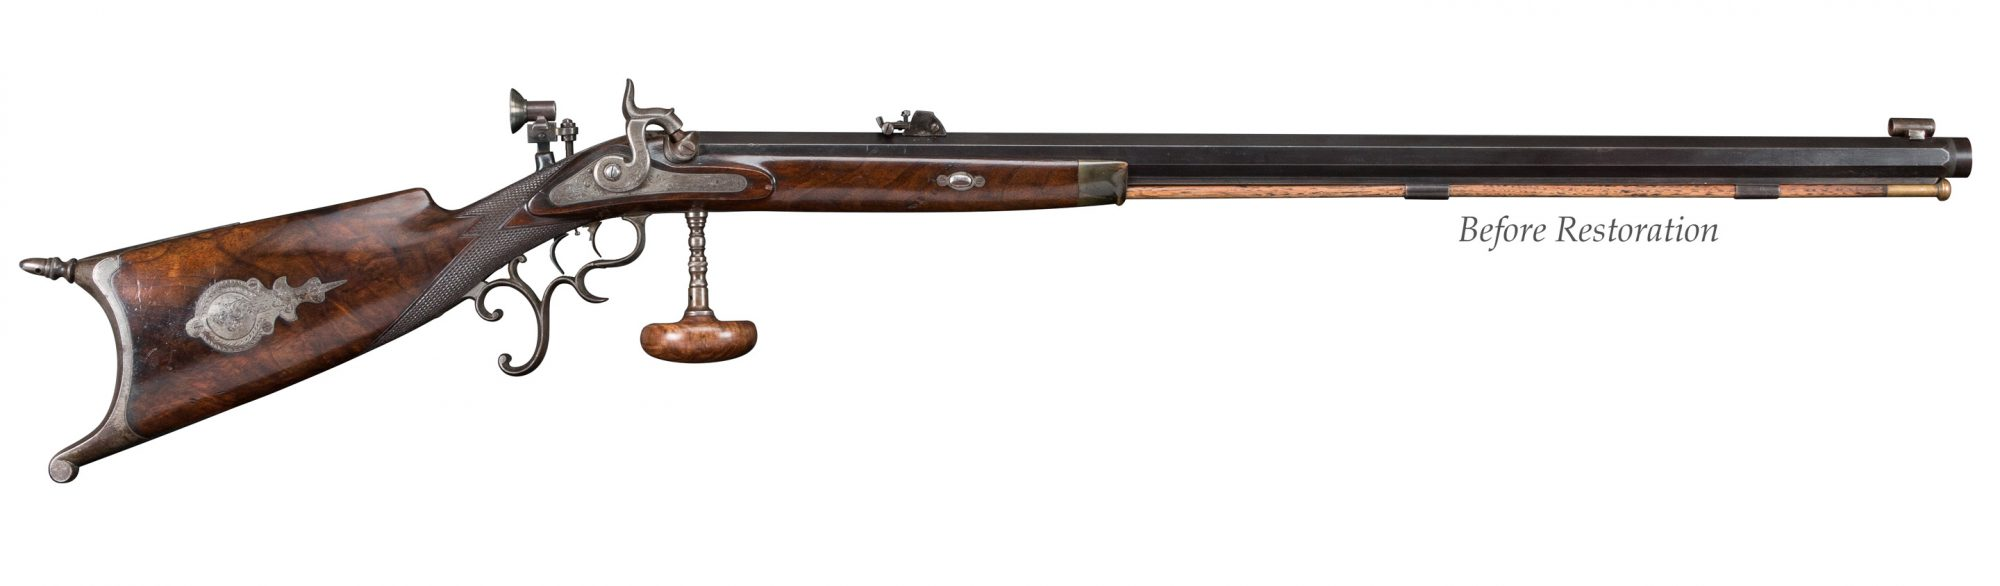 Photo of Germanic-themed percussion Schuetzen rifle, before restoration by Turnbull Restoration Co.